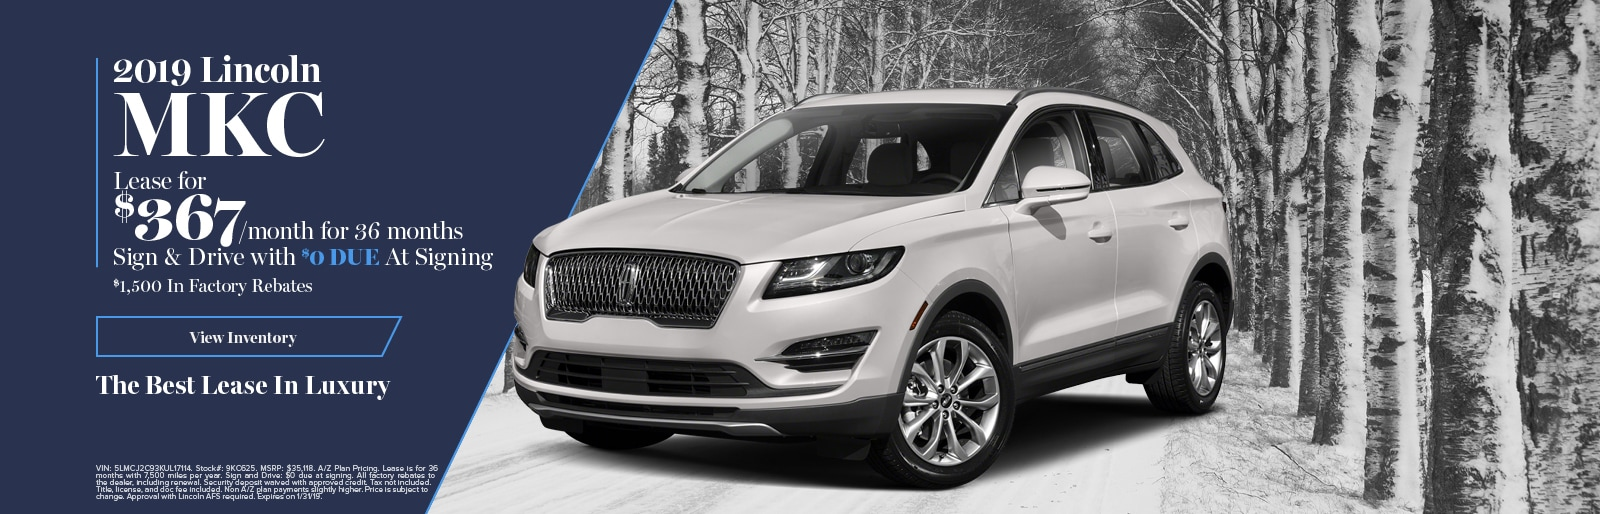 New 2019 Used Lincoln Cars For Sale In Southgate Mi Serving